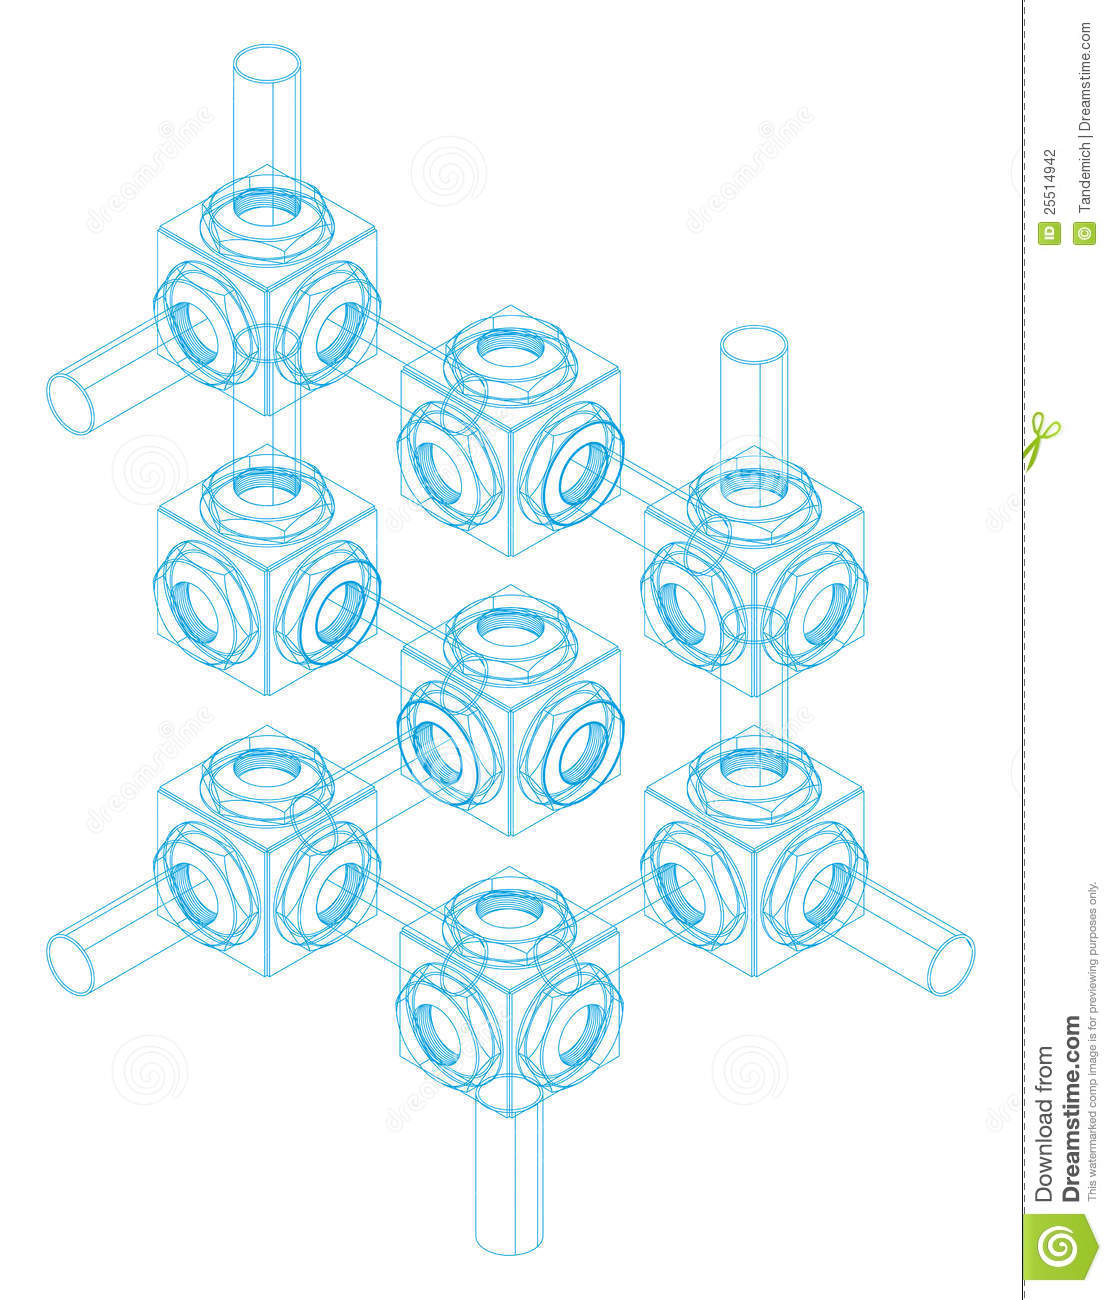 Stock Photography  Screw-nut  isometric projection  engineering graphEngineering Graphics Isometric Projection